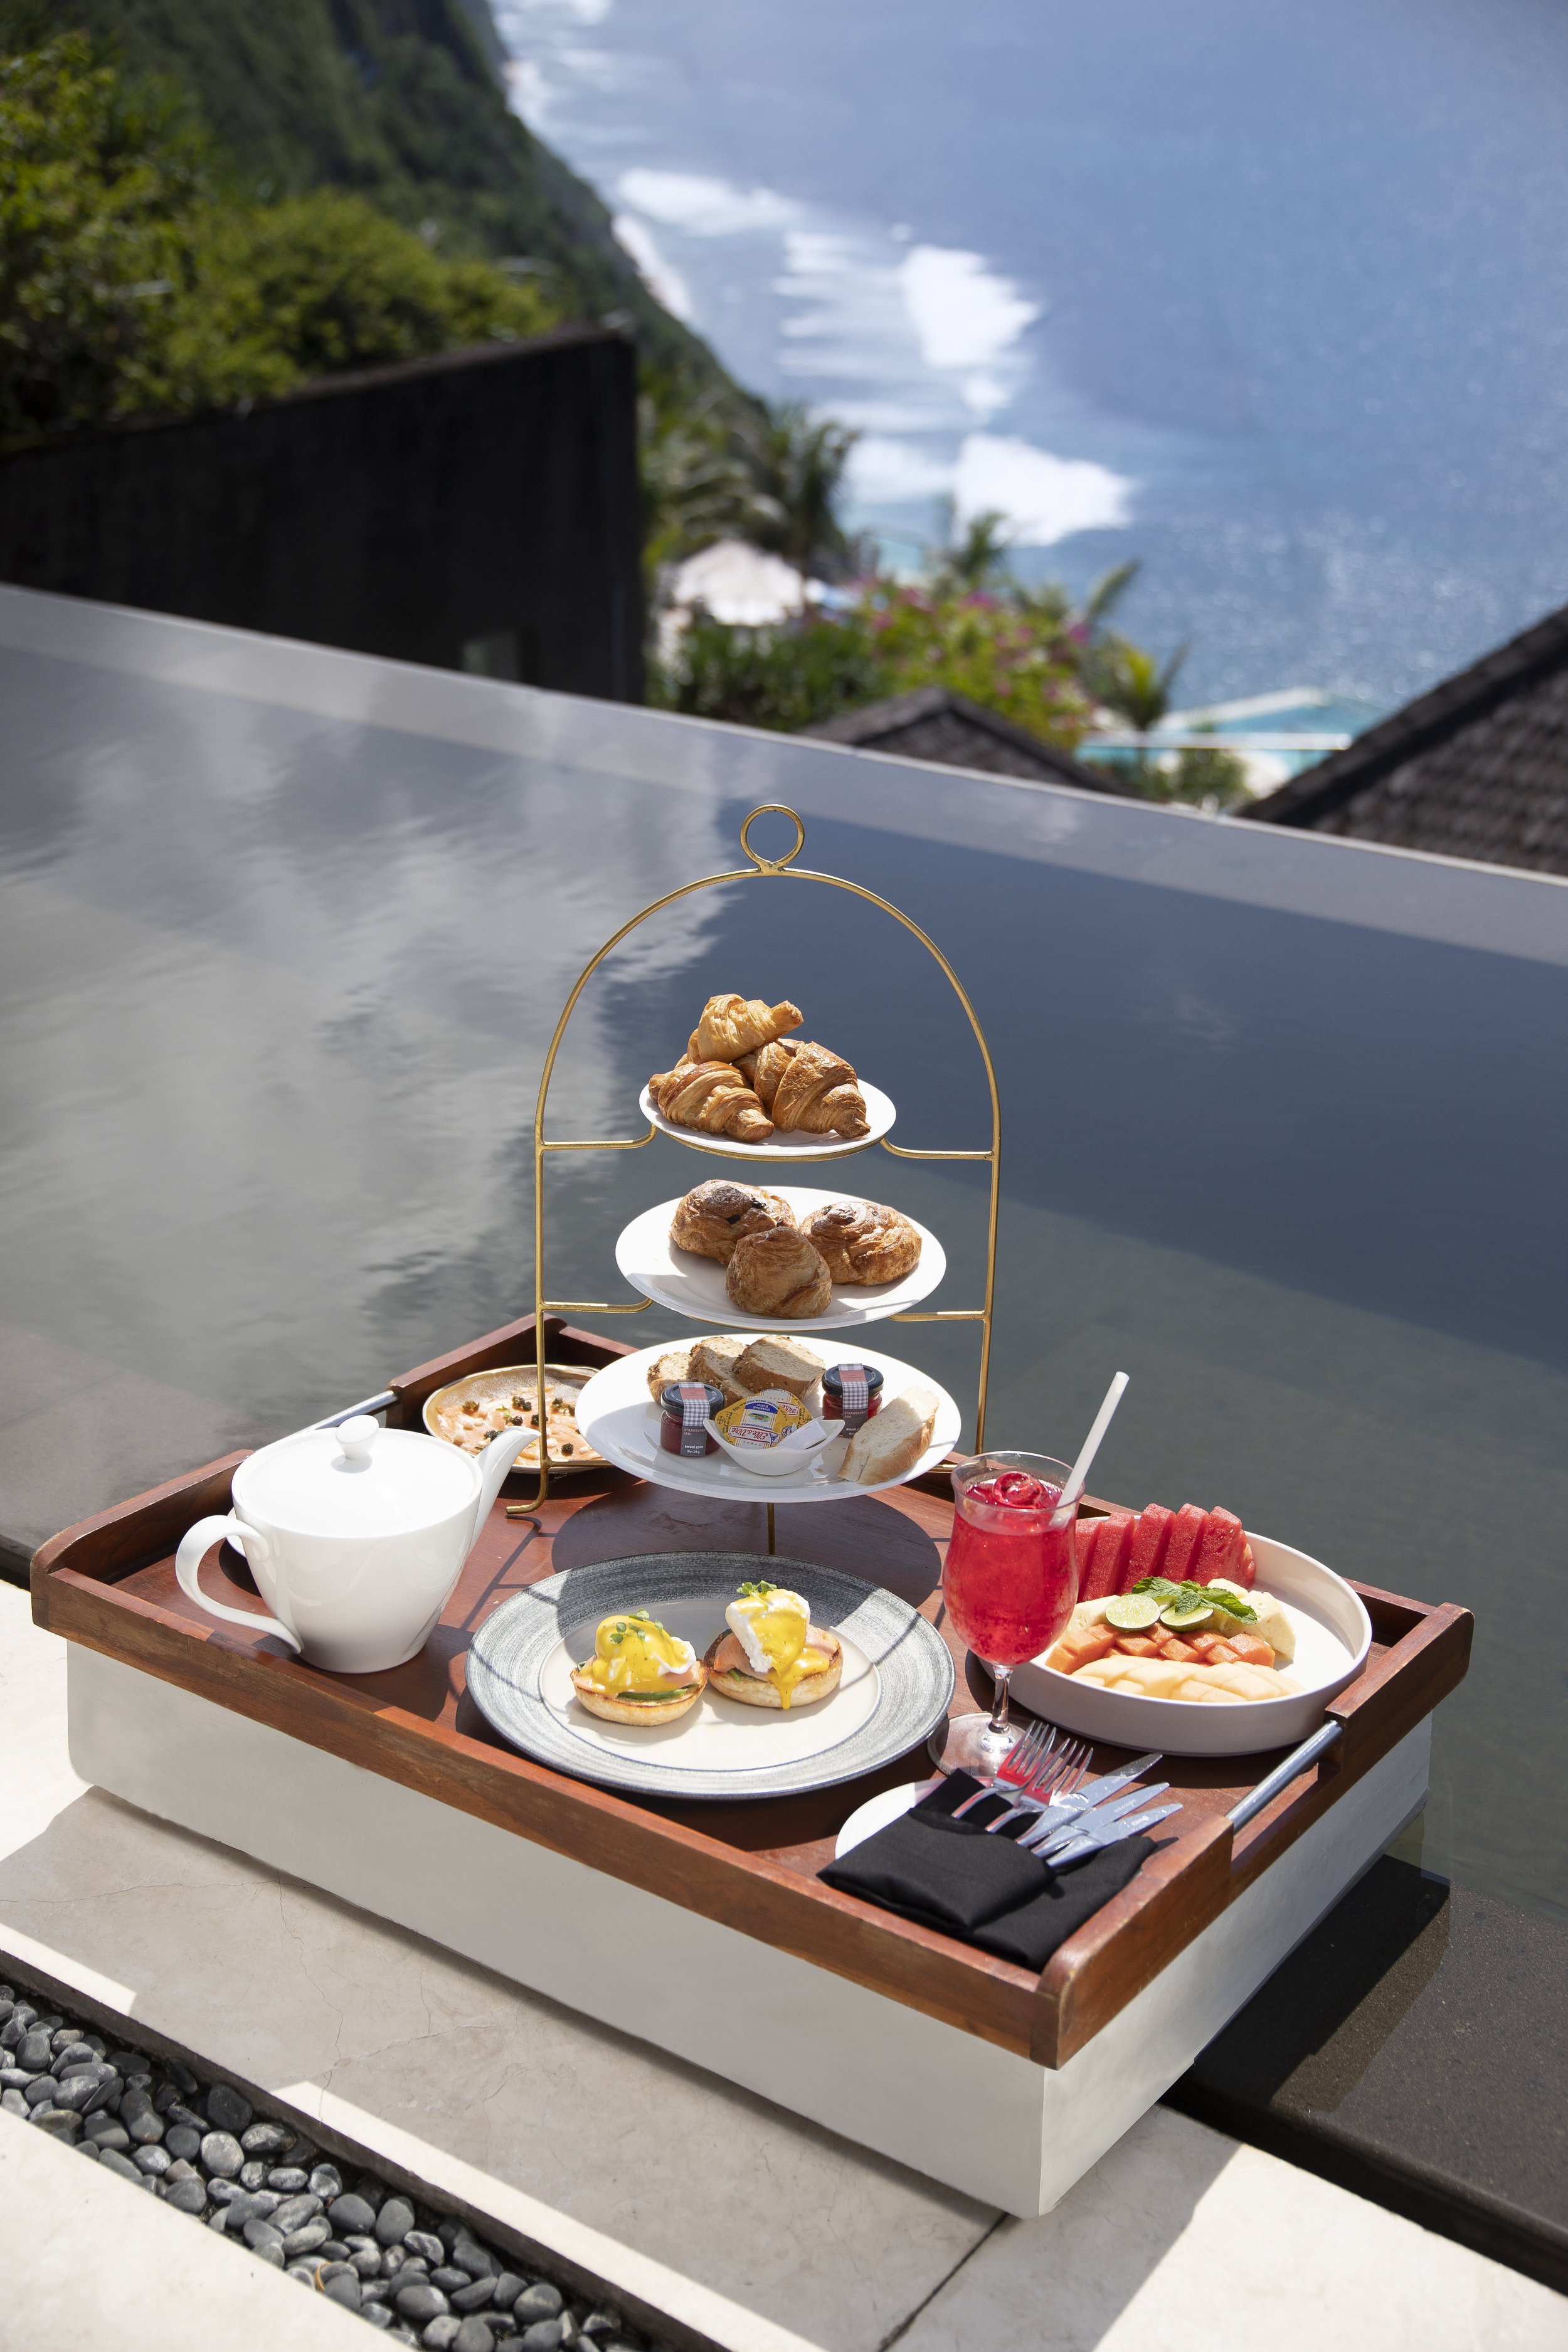 Breakfast with a View - Start off the day in style with a floating breakfast in the sky pool at sunrise. General Manager Brenden Peace suggests following this up with a range of activities including a visit to The Spa to be pampered by a two hour ritual or, if you're feeling particularly active, enjoying a friendly game of tennis at the resort's own tennis court.